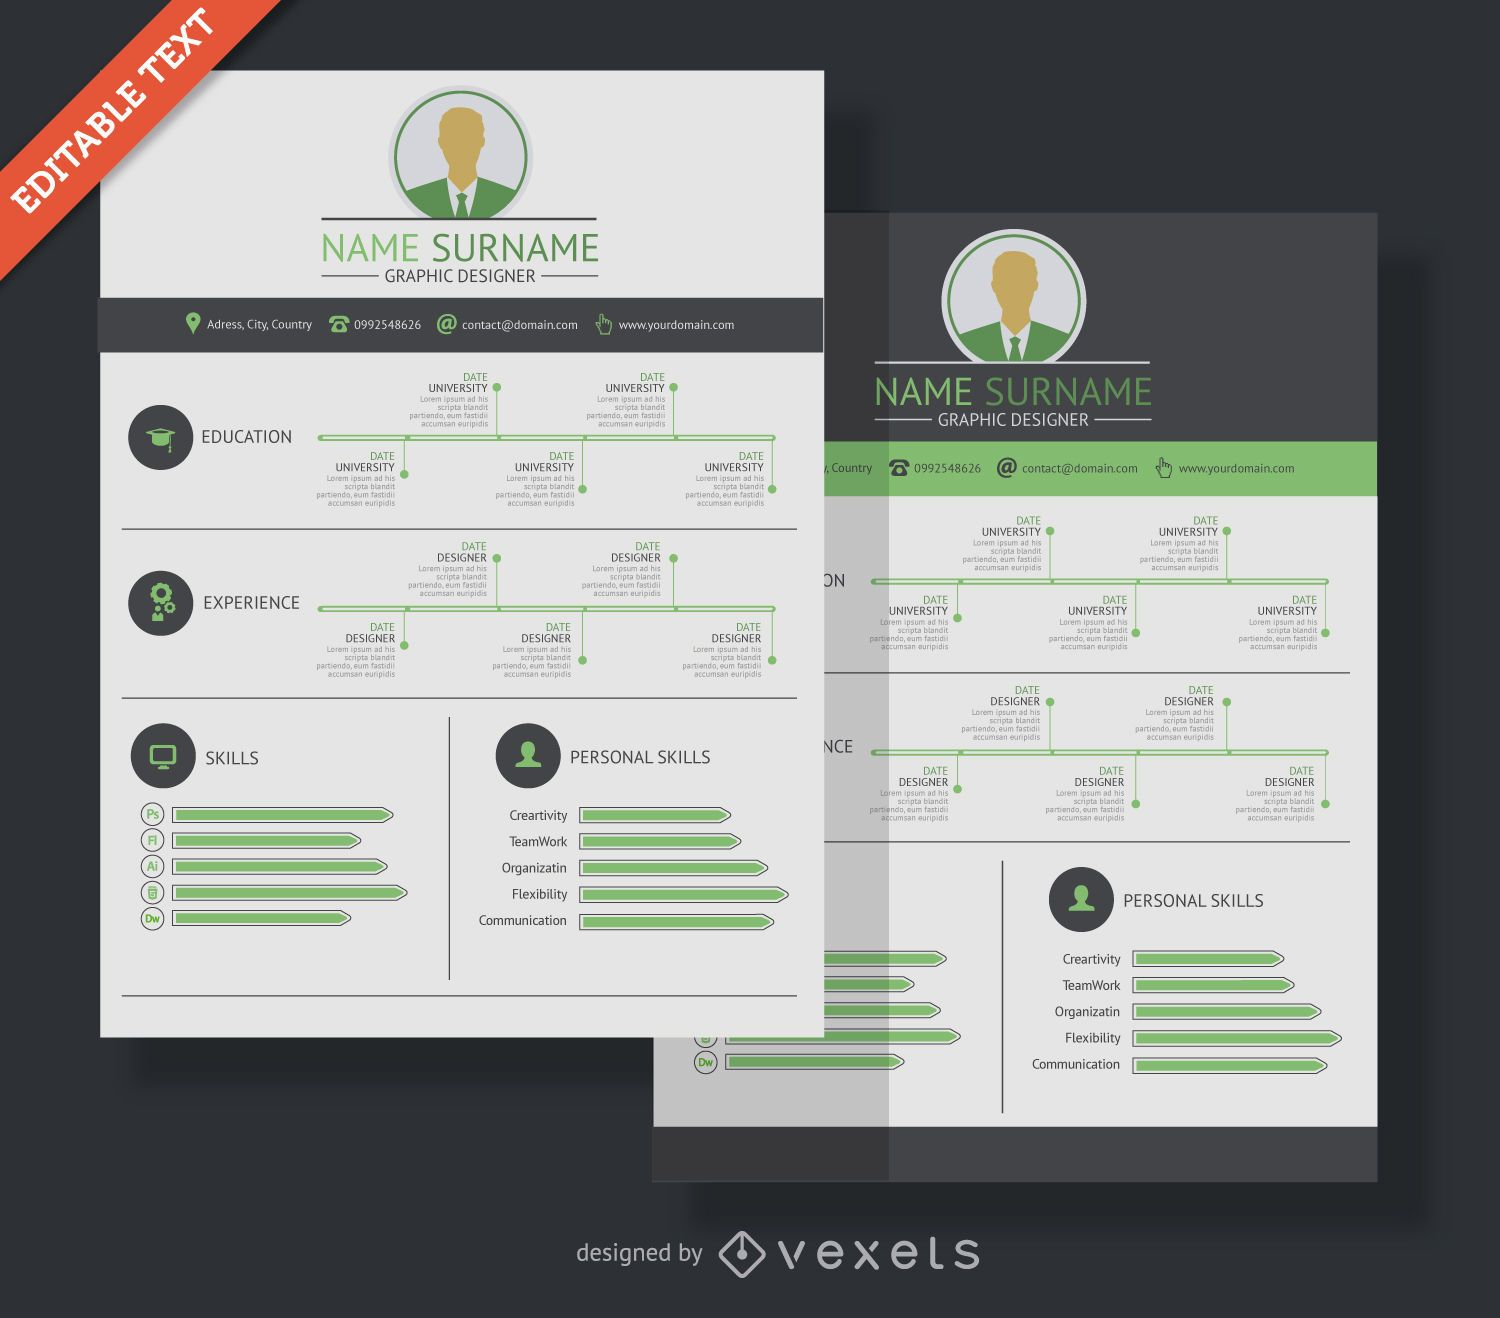 resume Flat Design Resume graphic designer resume cv vector download flat design mockup